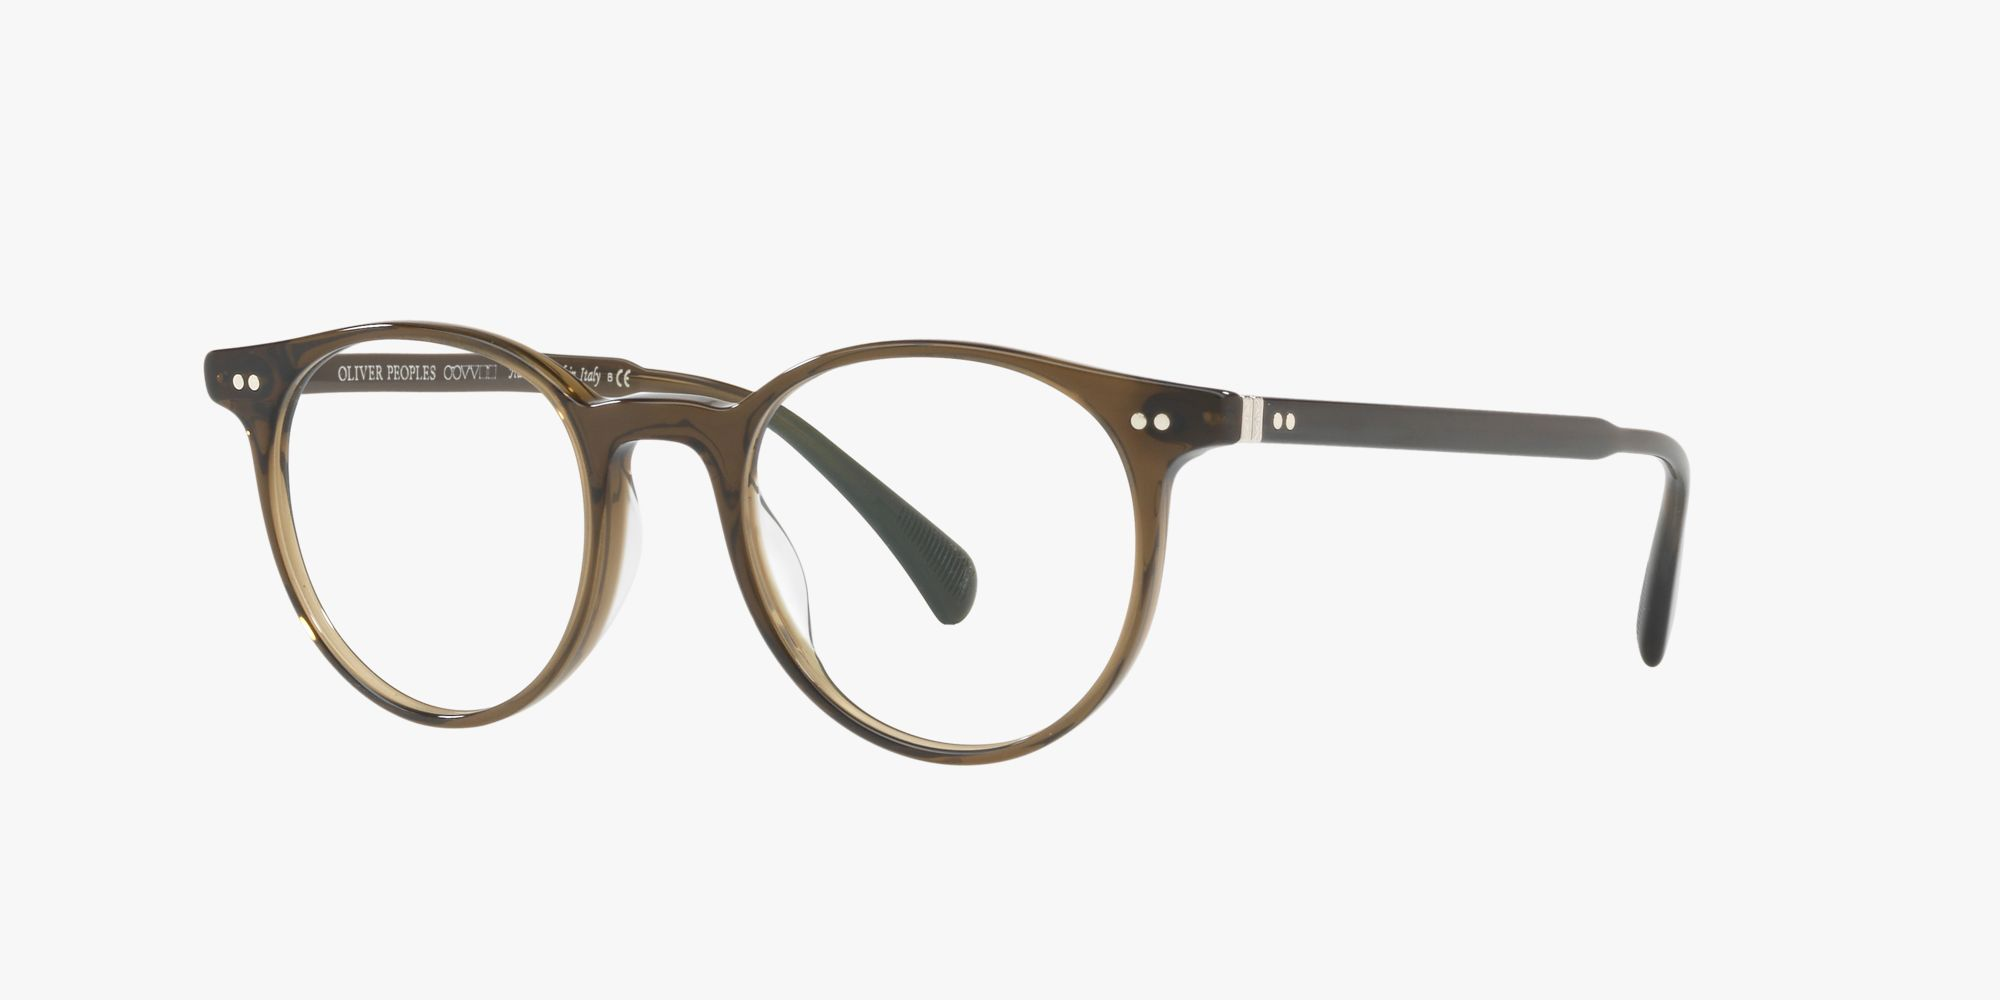 d4aed37a46a Collections OV5318U - Dark Military - Demo Lens - Acetate